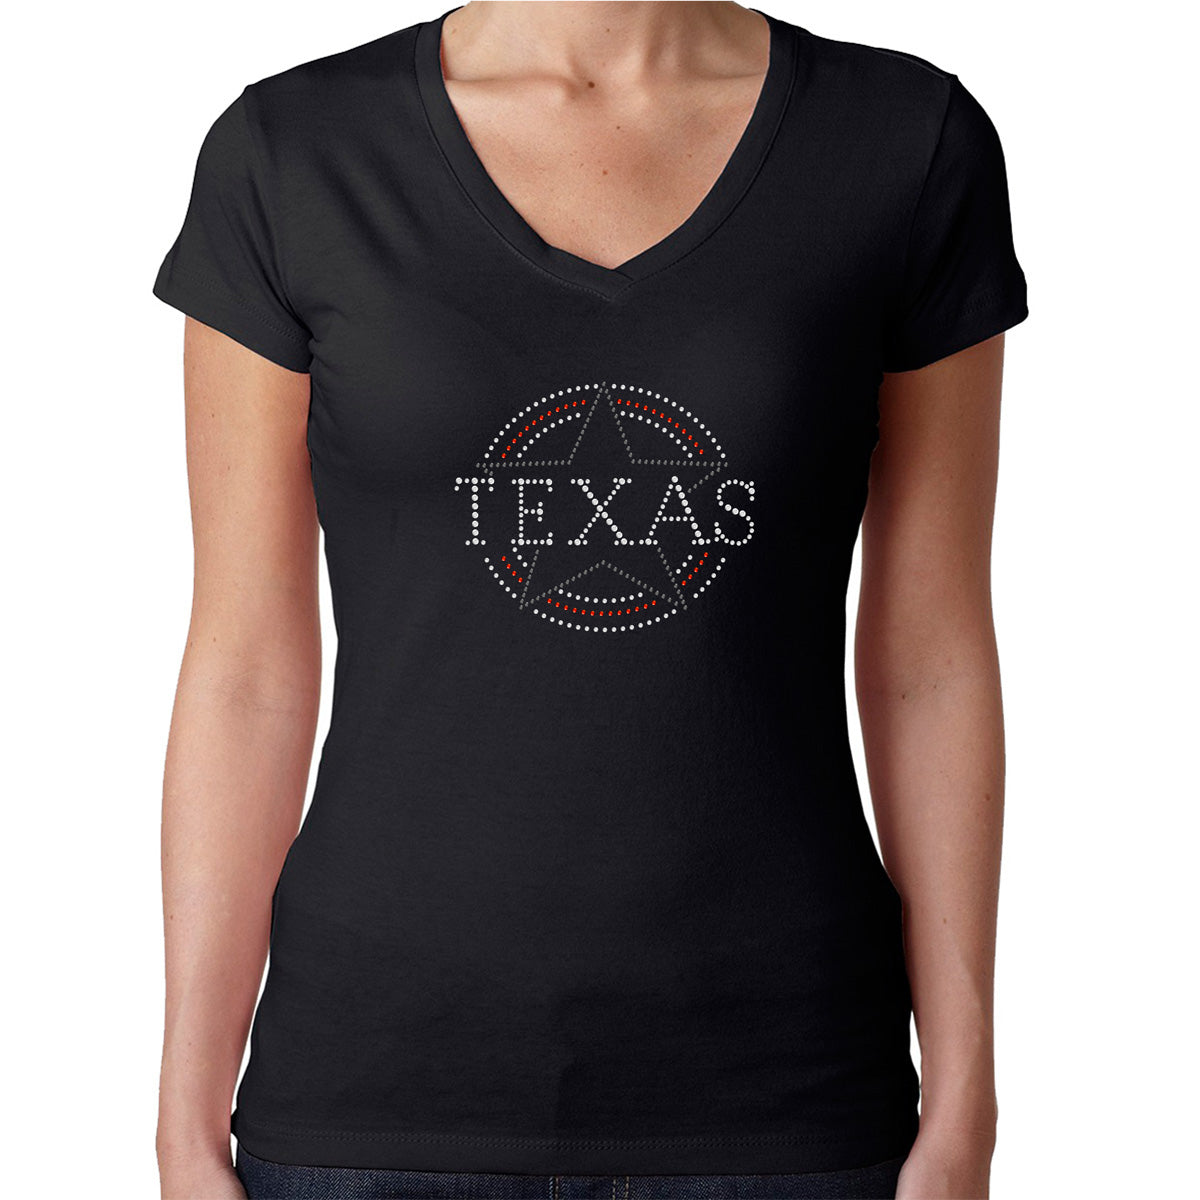 Womens T-Shirt Rhinestone Bling Black Fitted Tee Texas Shield State Star